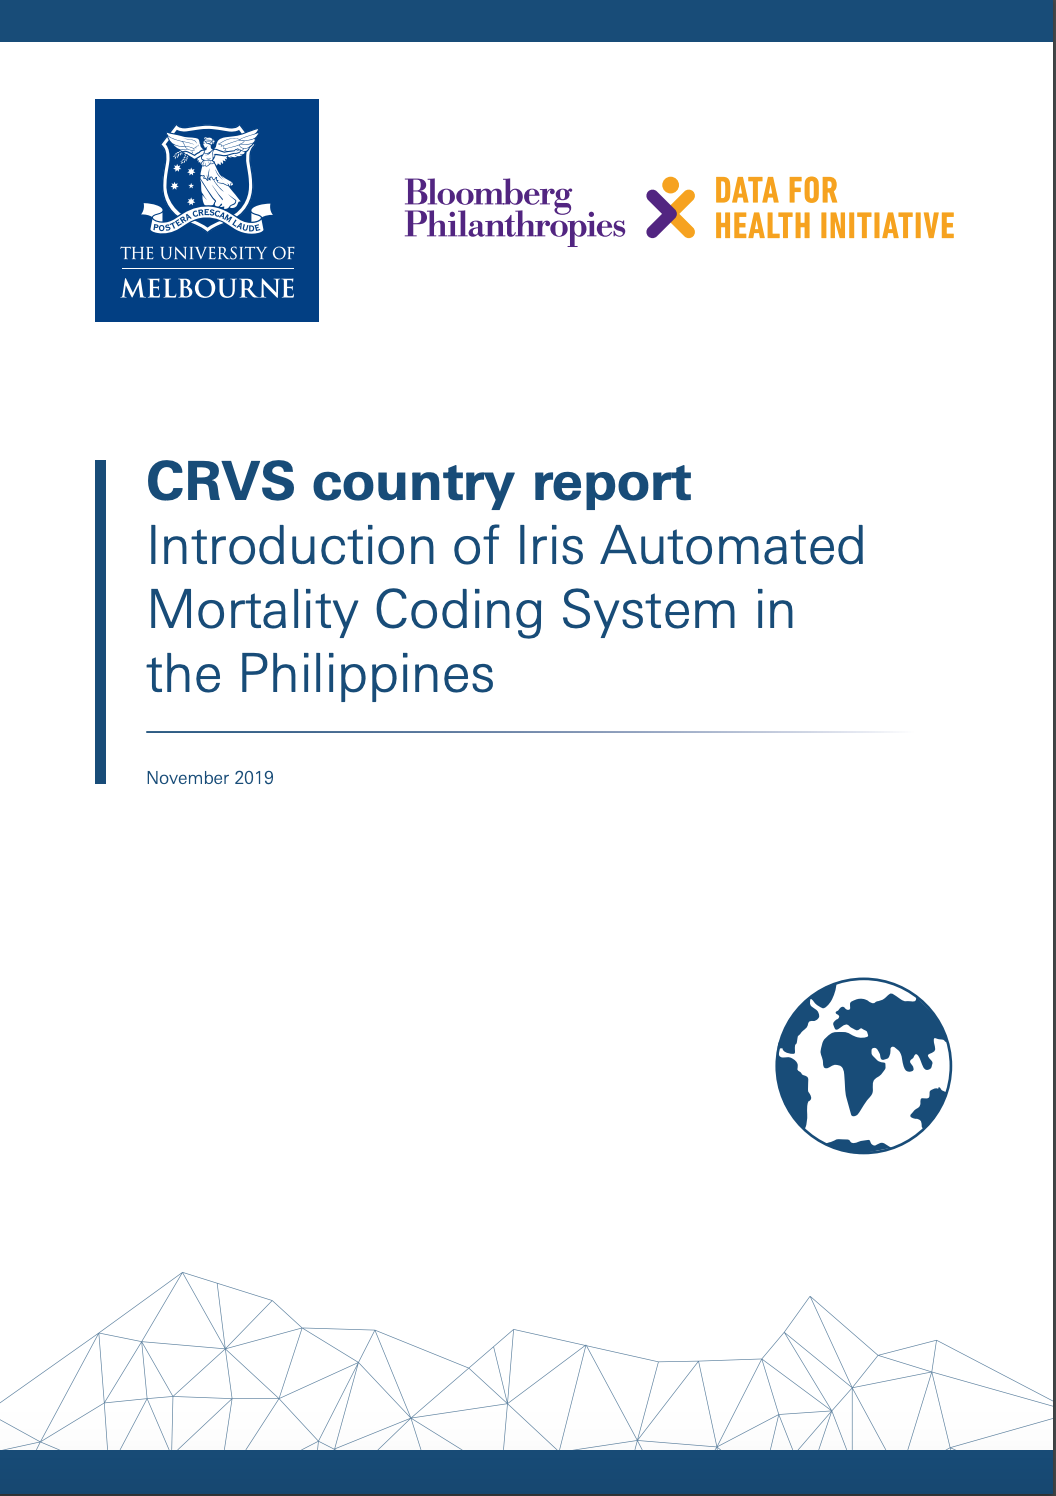 CRVS country report